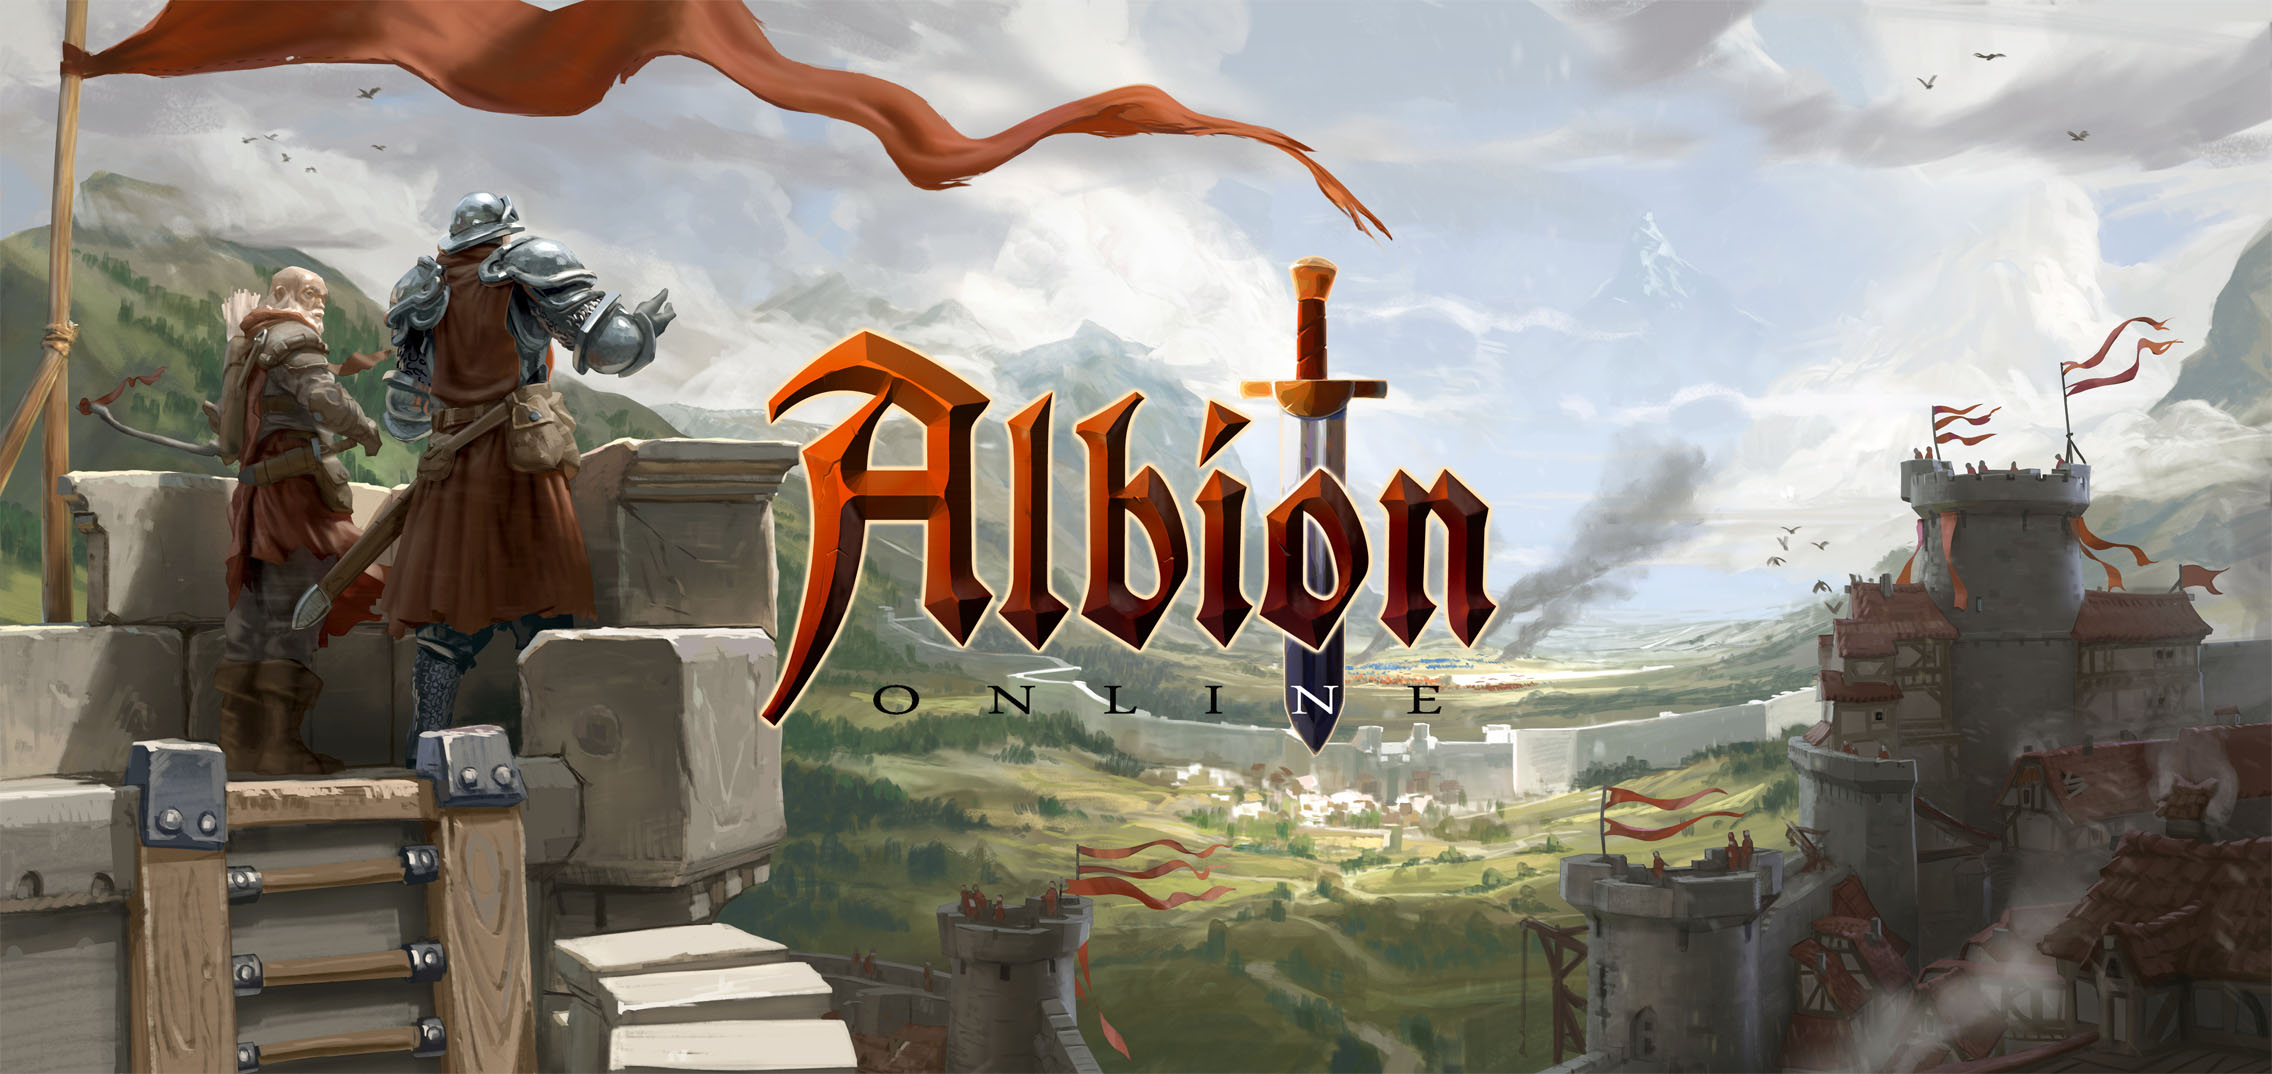 BUY Albion Silver Pm me